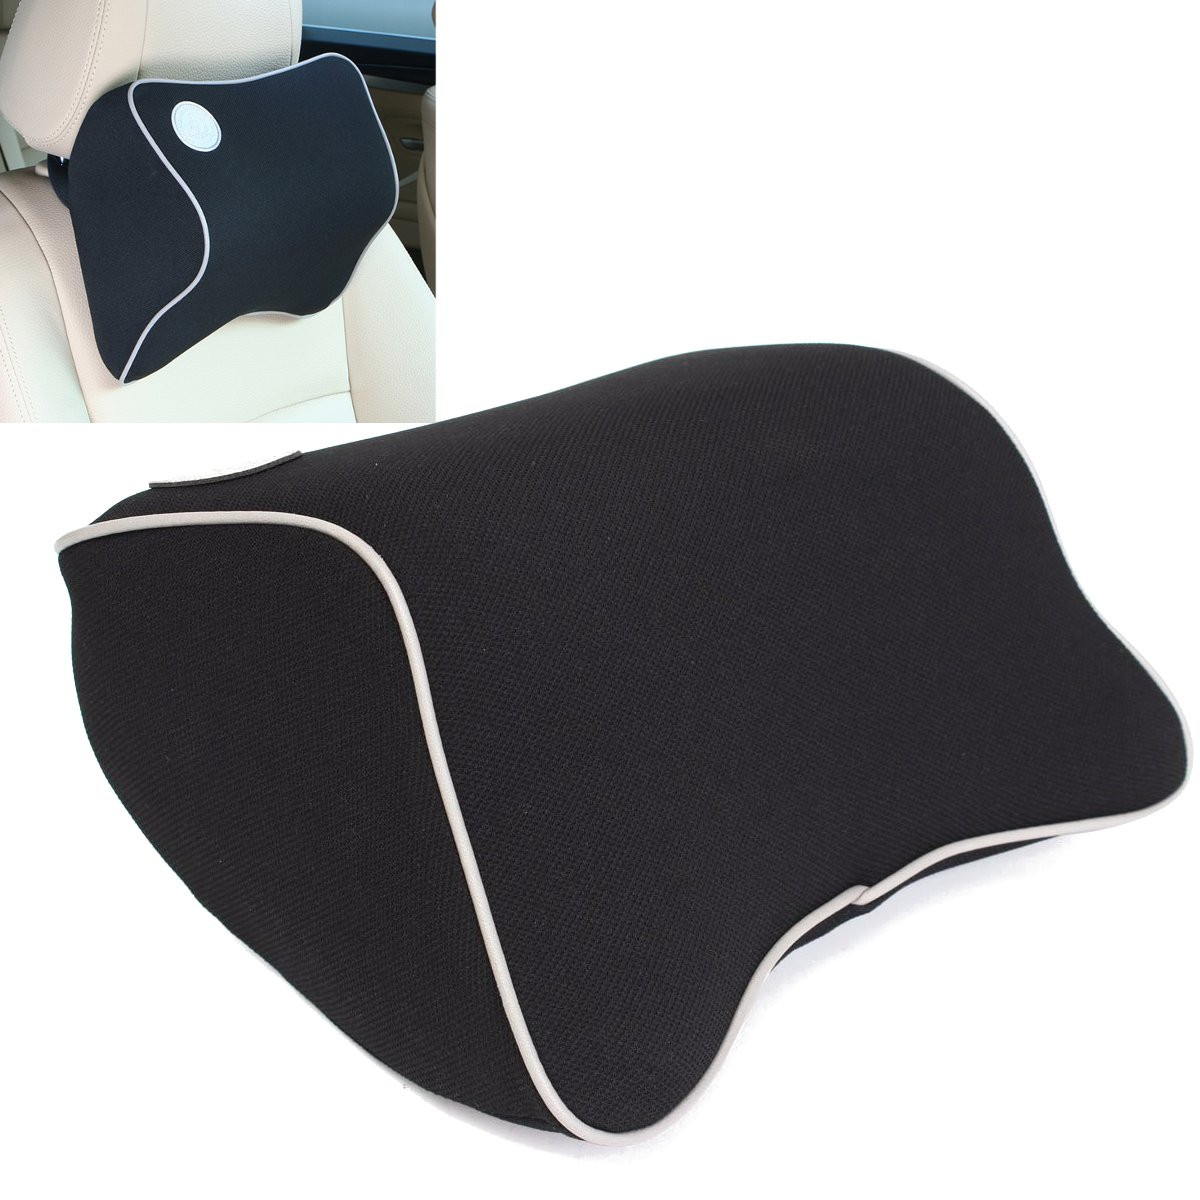 MOHOO Space Memory Foam Bone Shape Pillow Vehicle Car Seat ...